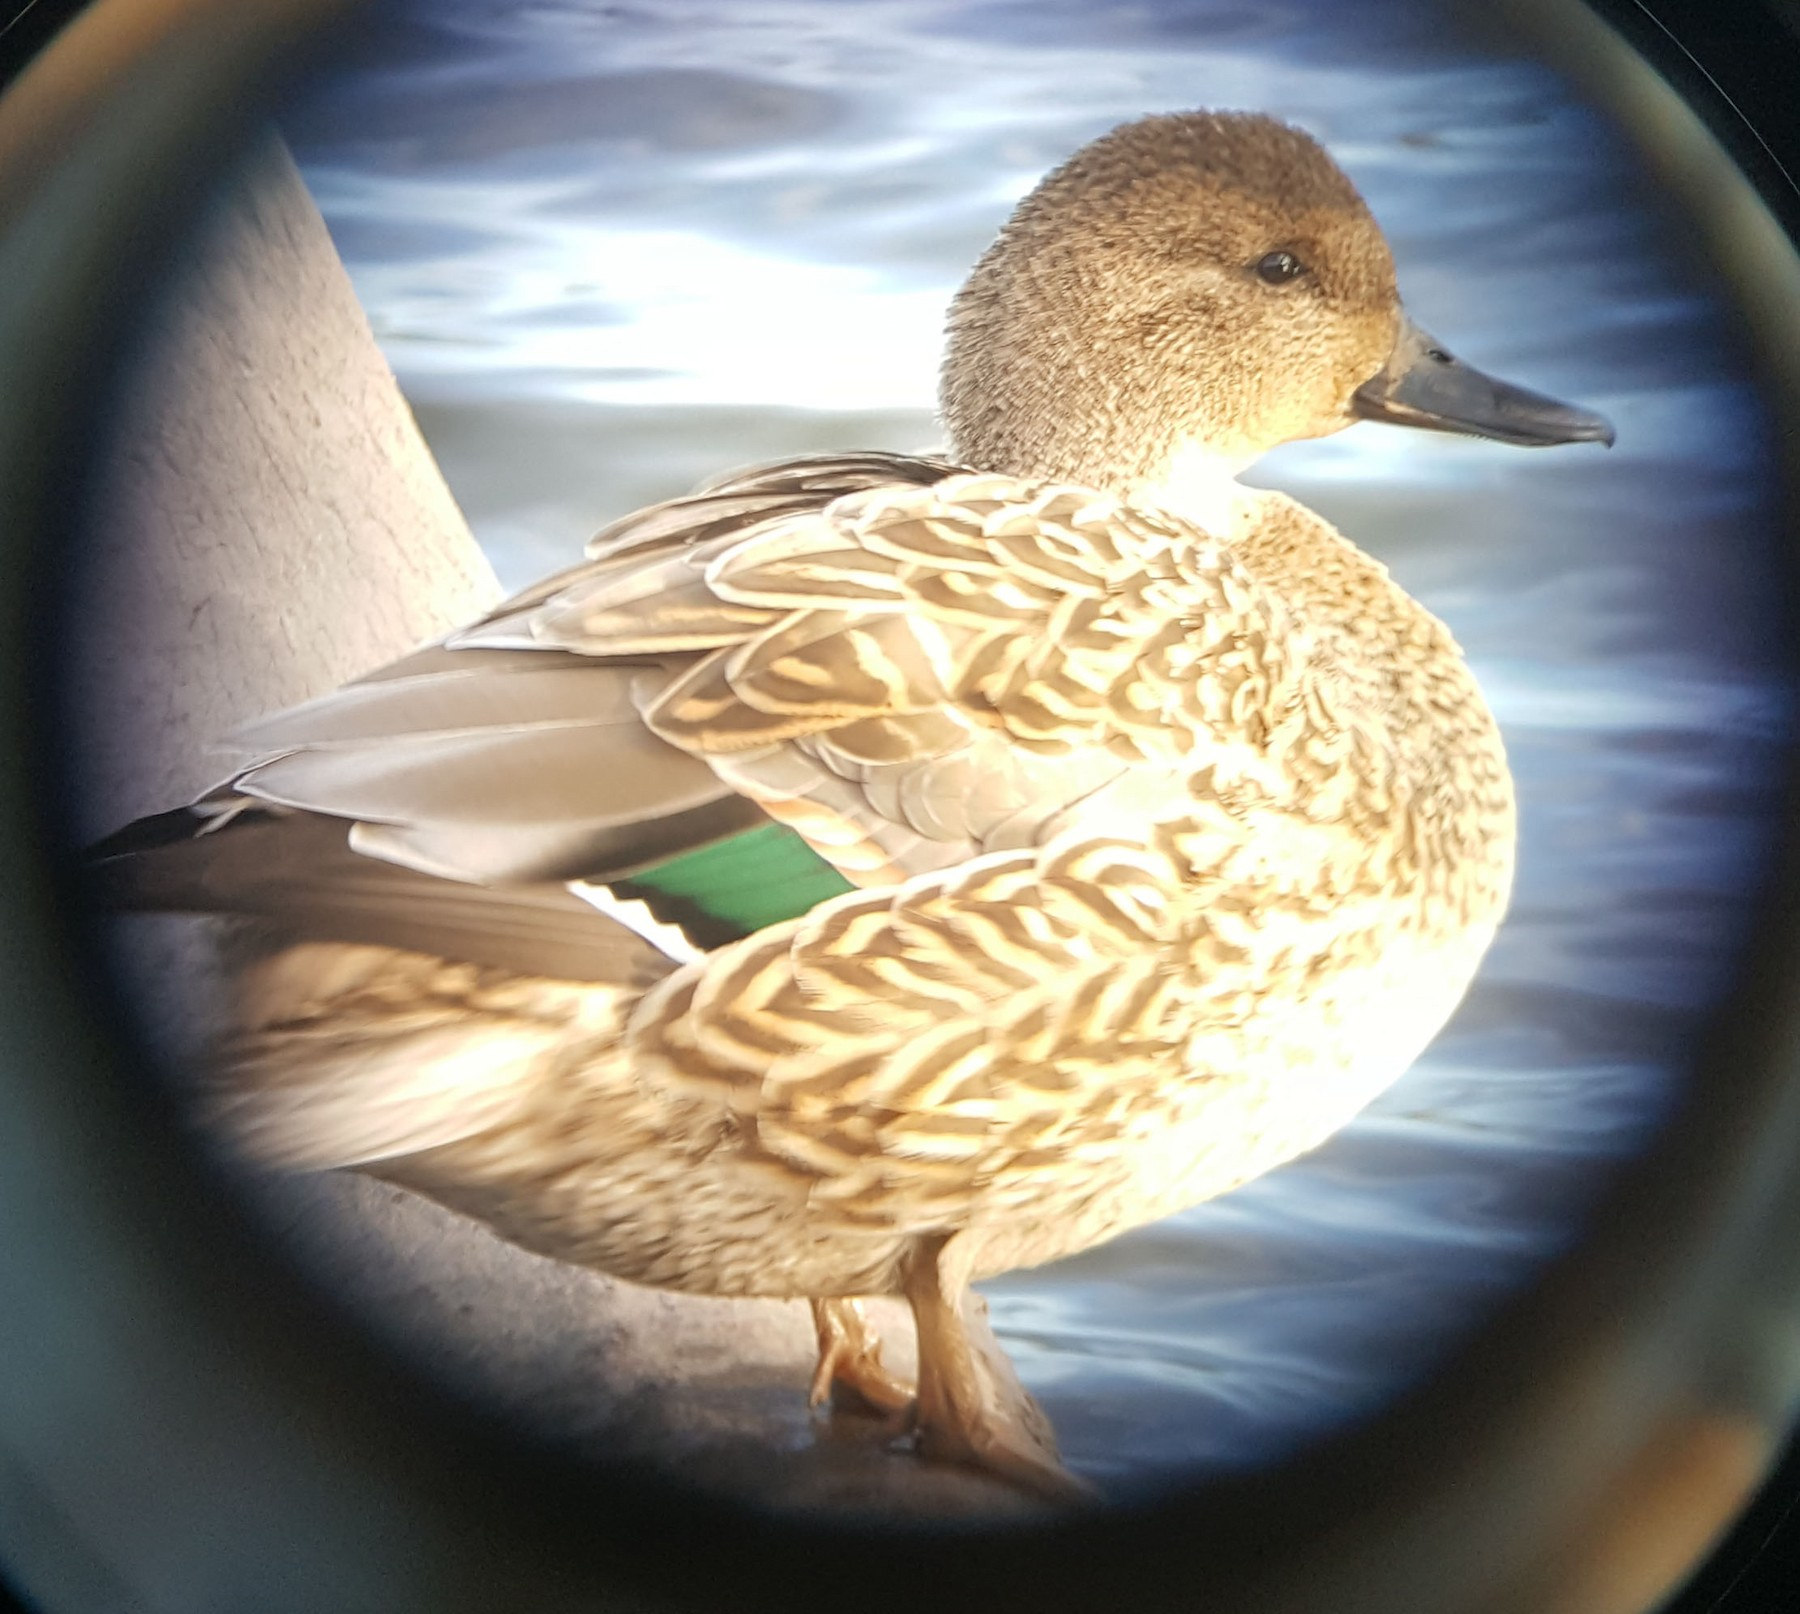 Northern Pintail x Green-winged Teal (hybrid) - Tom Forwood JR